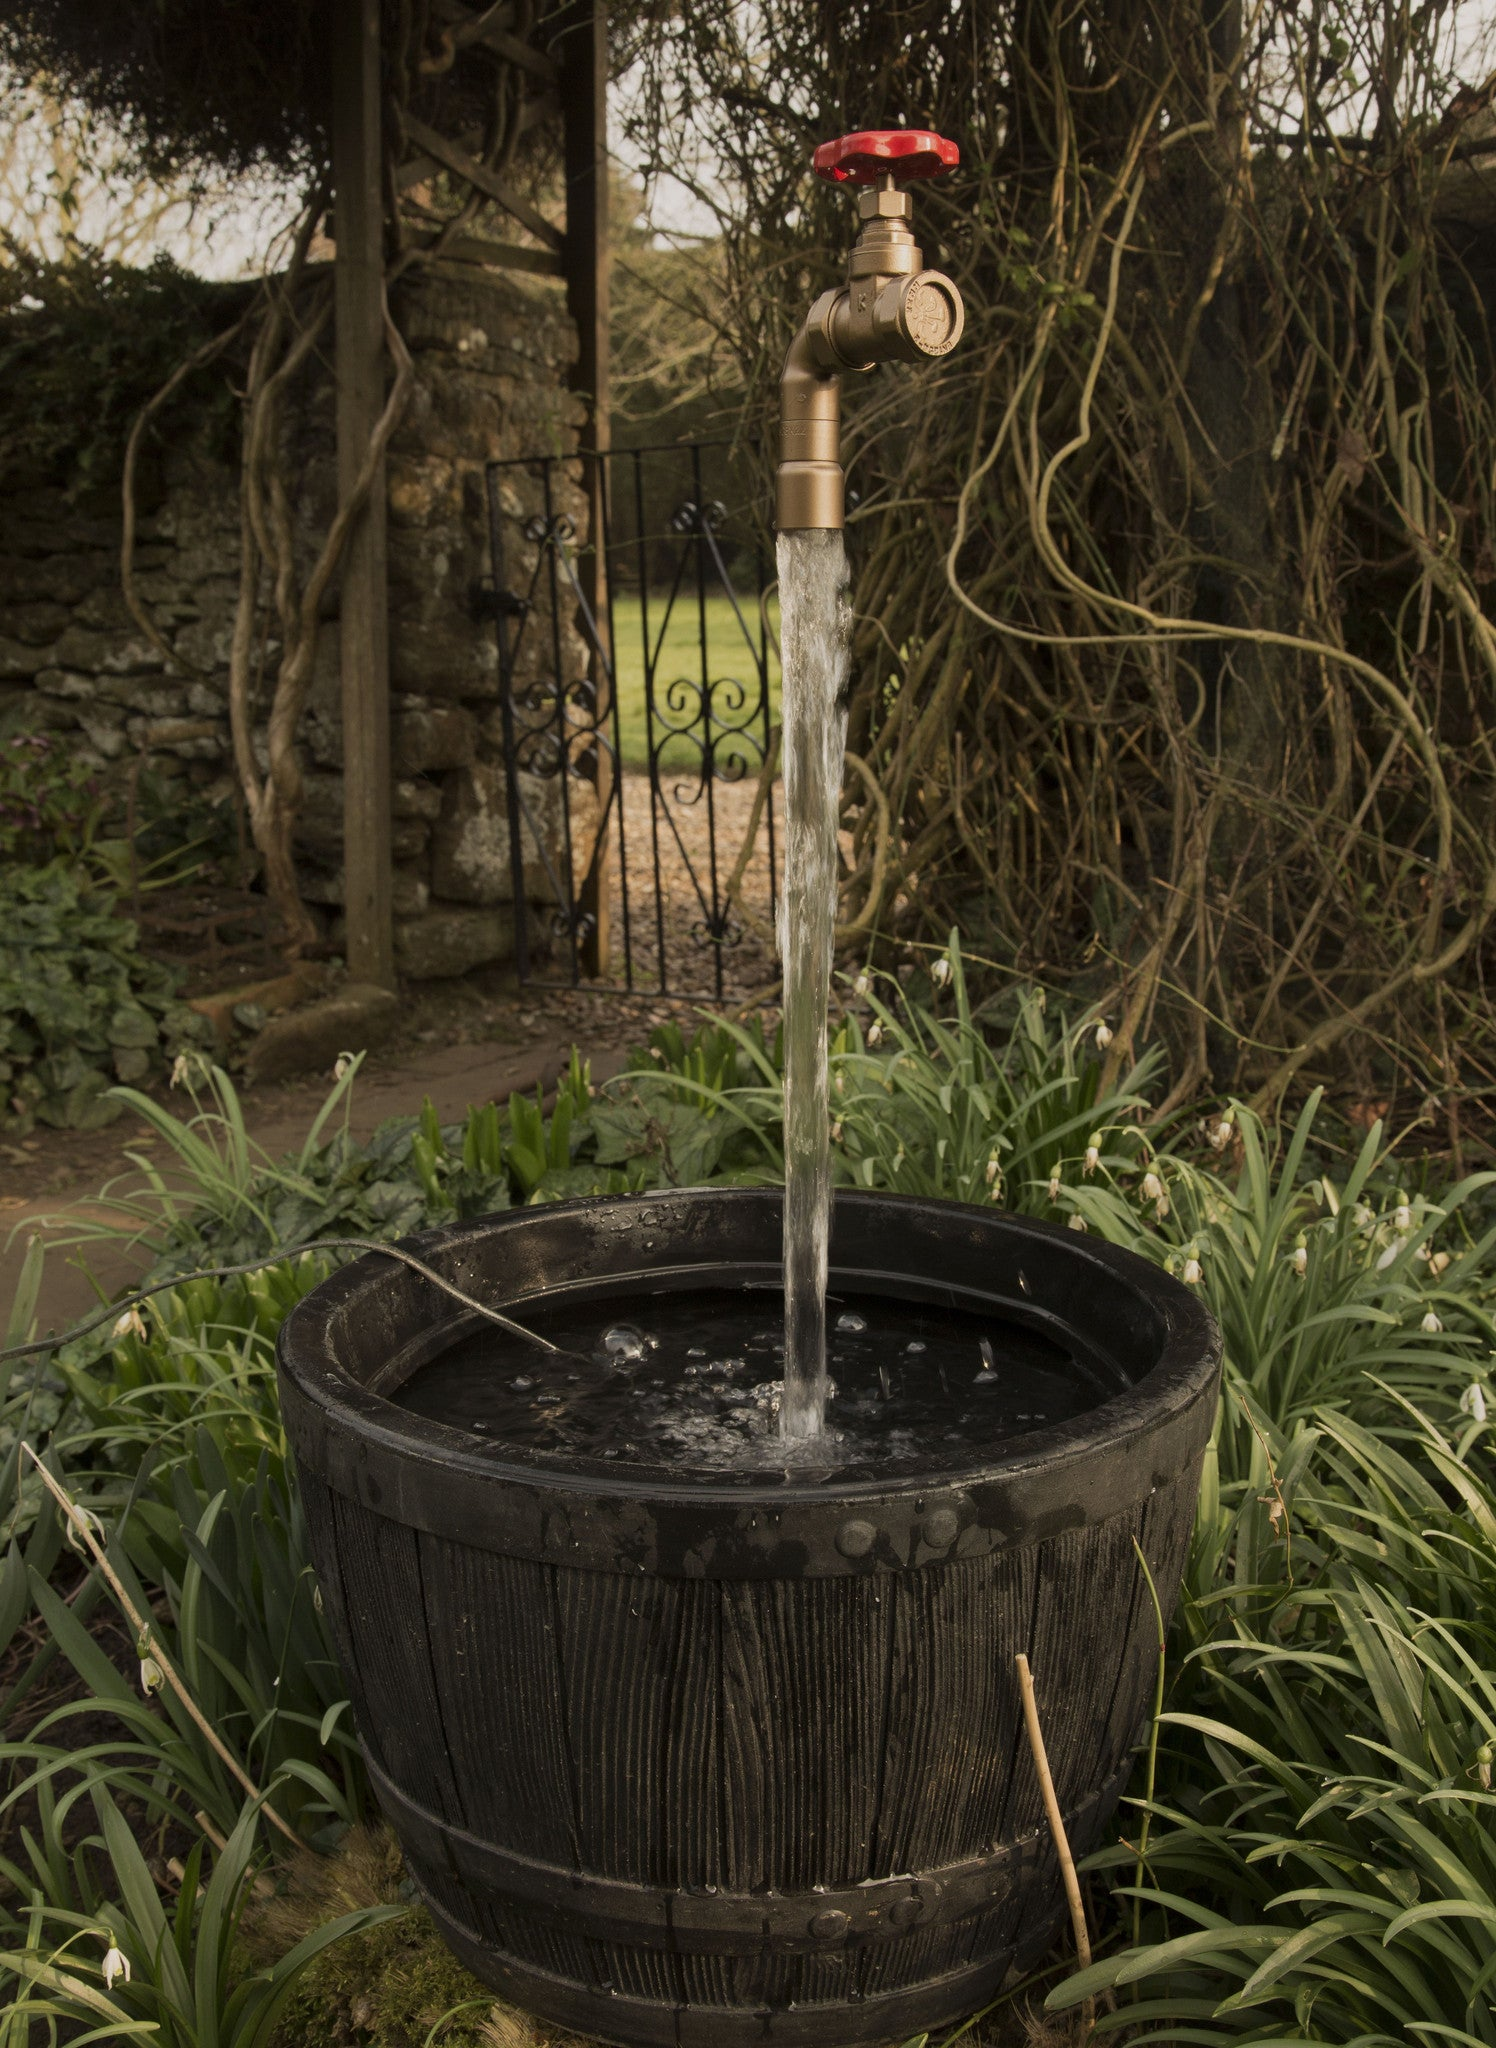 22mm Floating Tap Water Feature